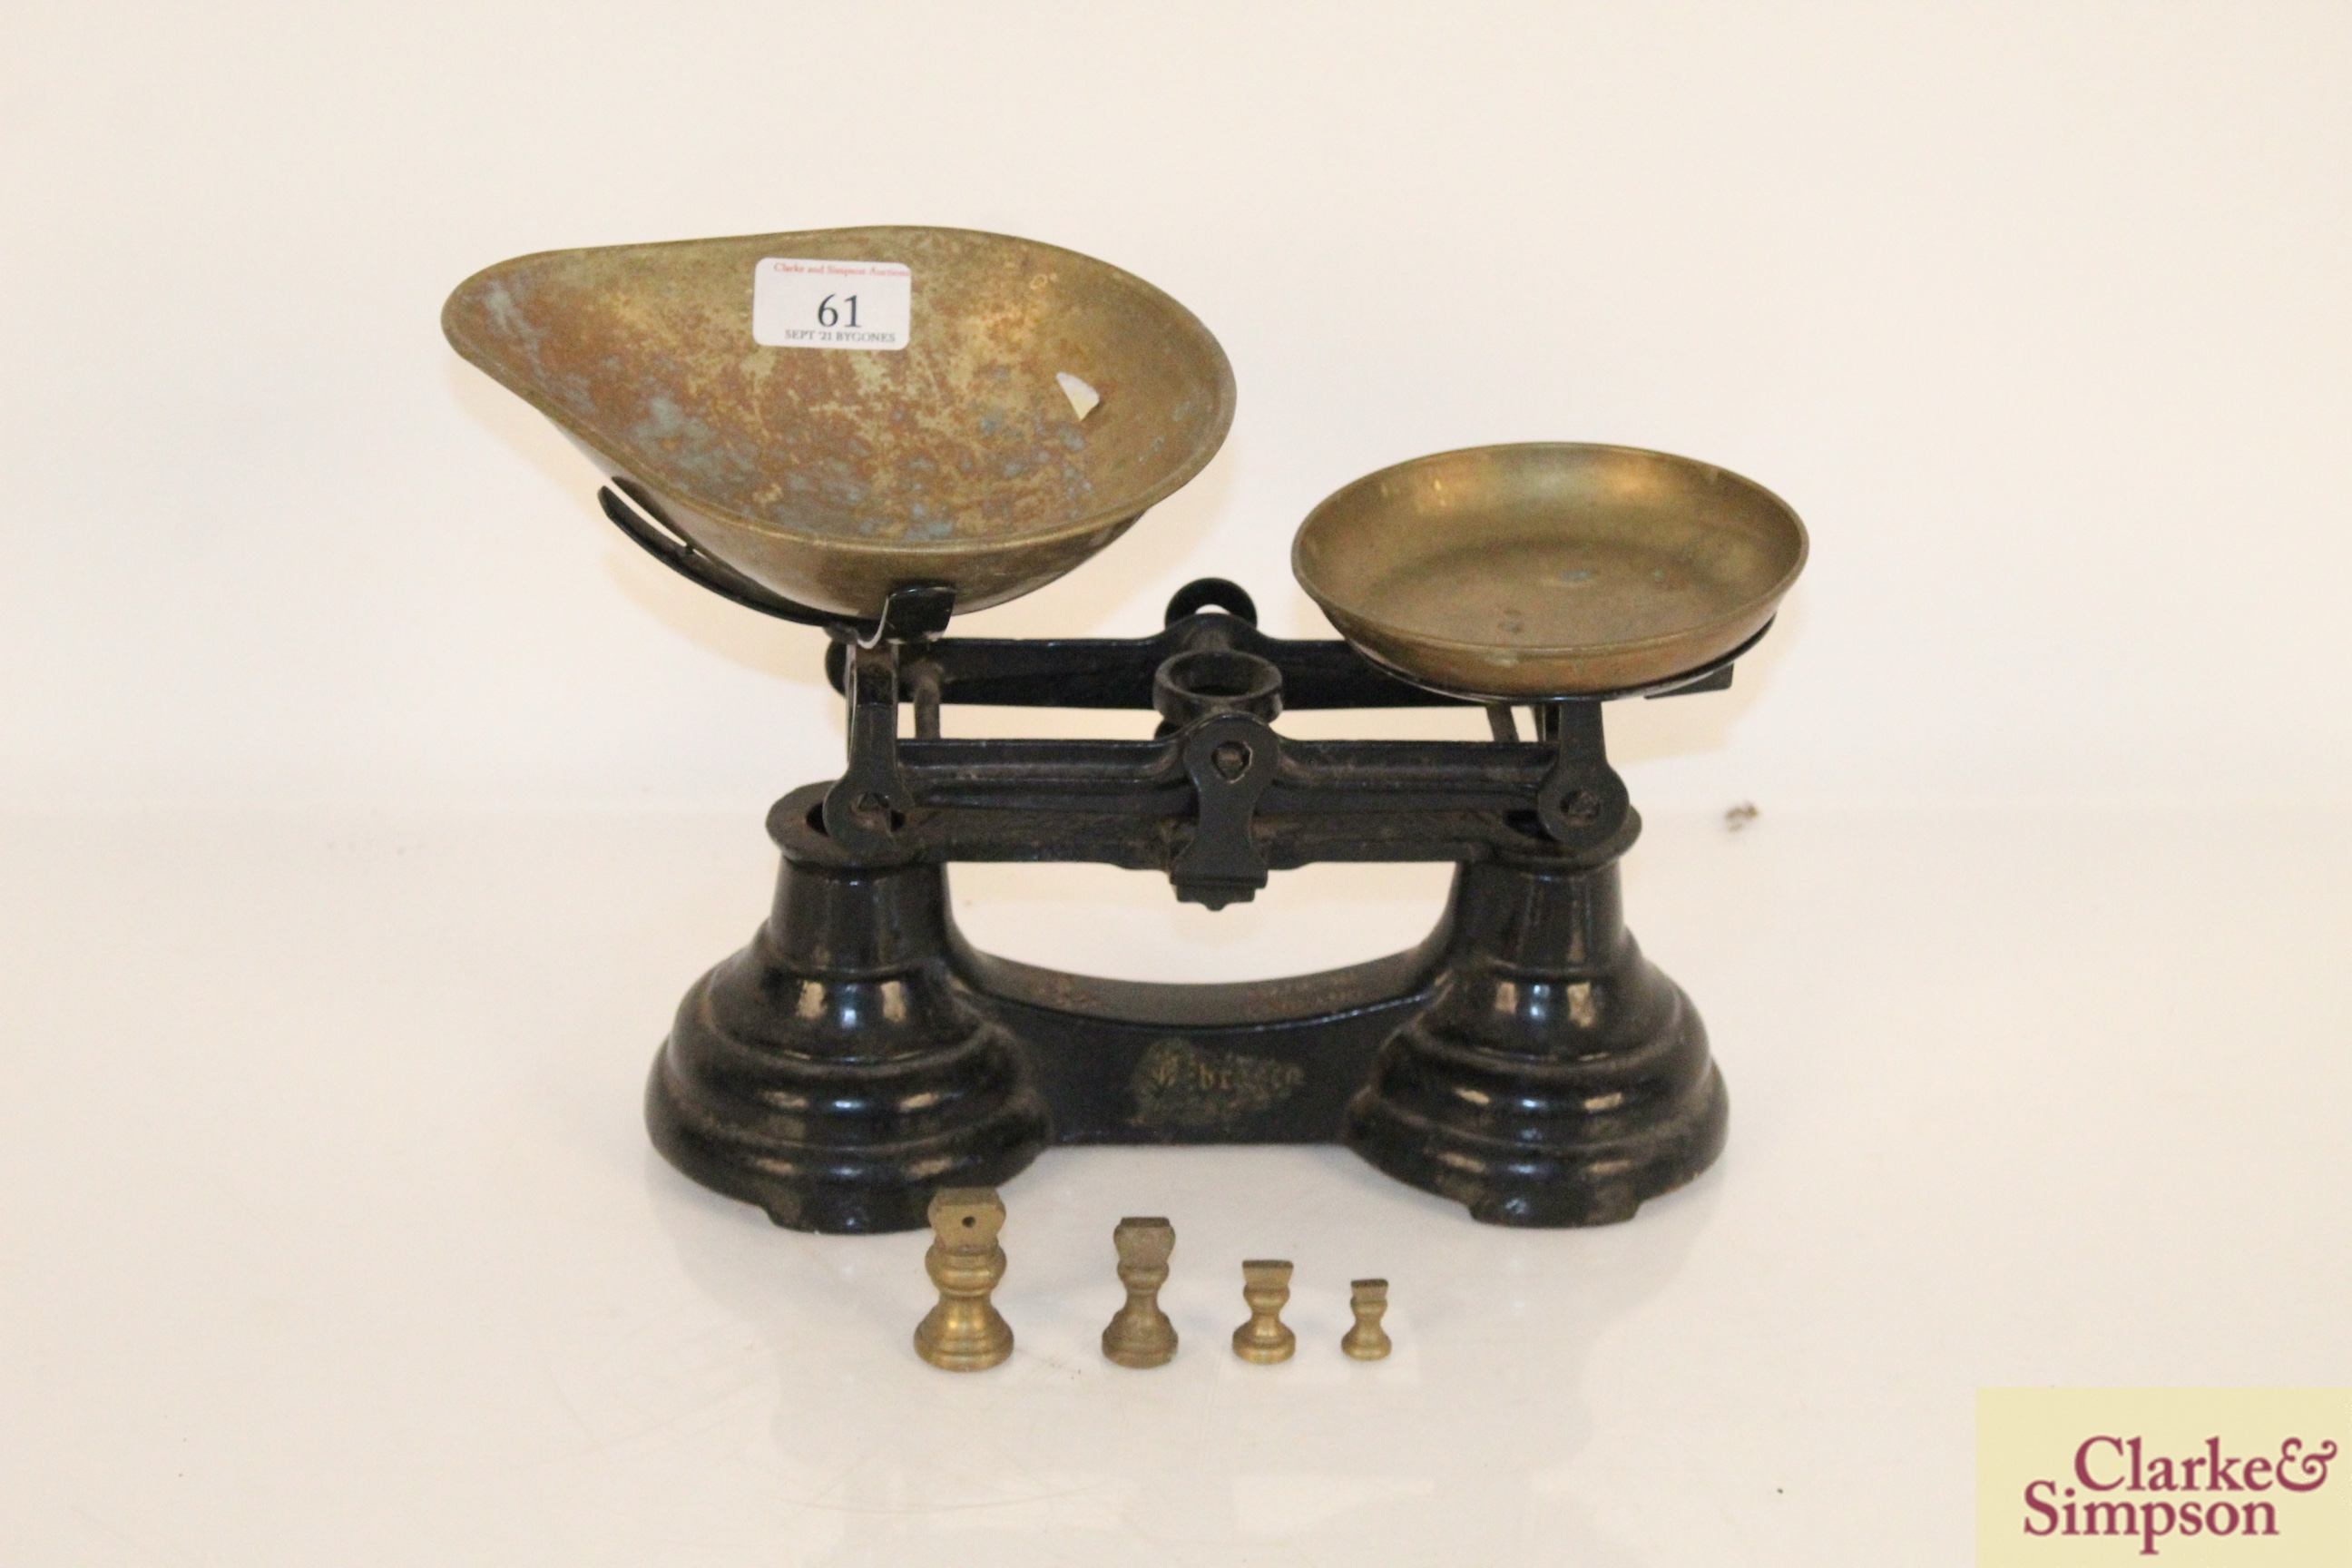 A set of cast iron and brass scales and weights